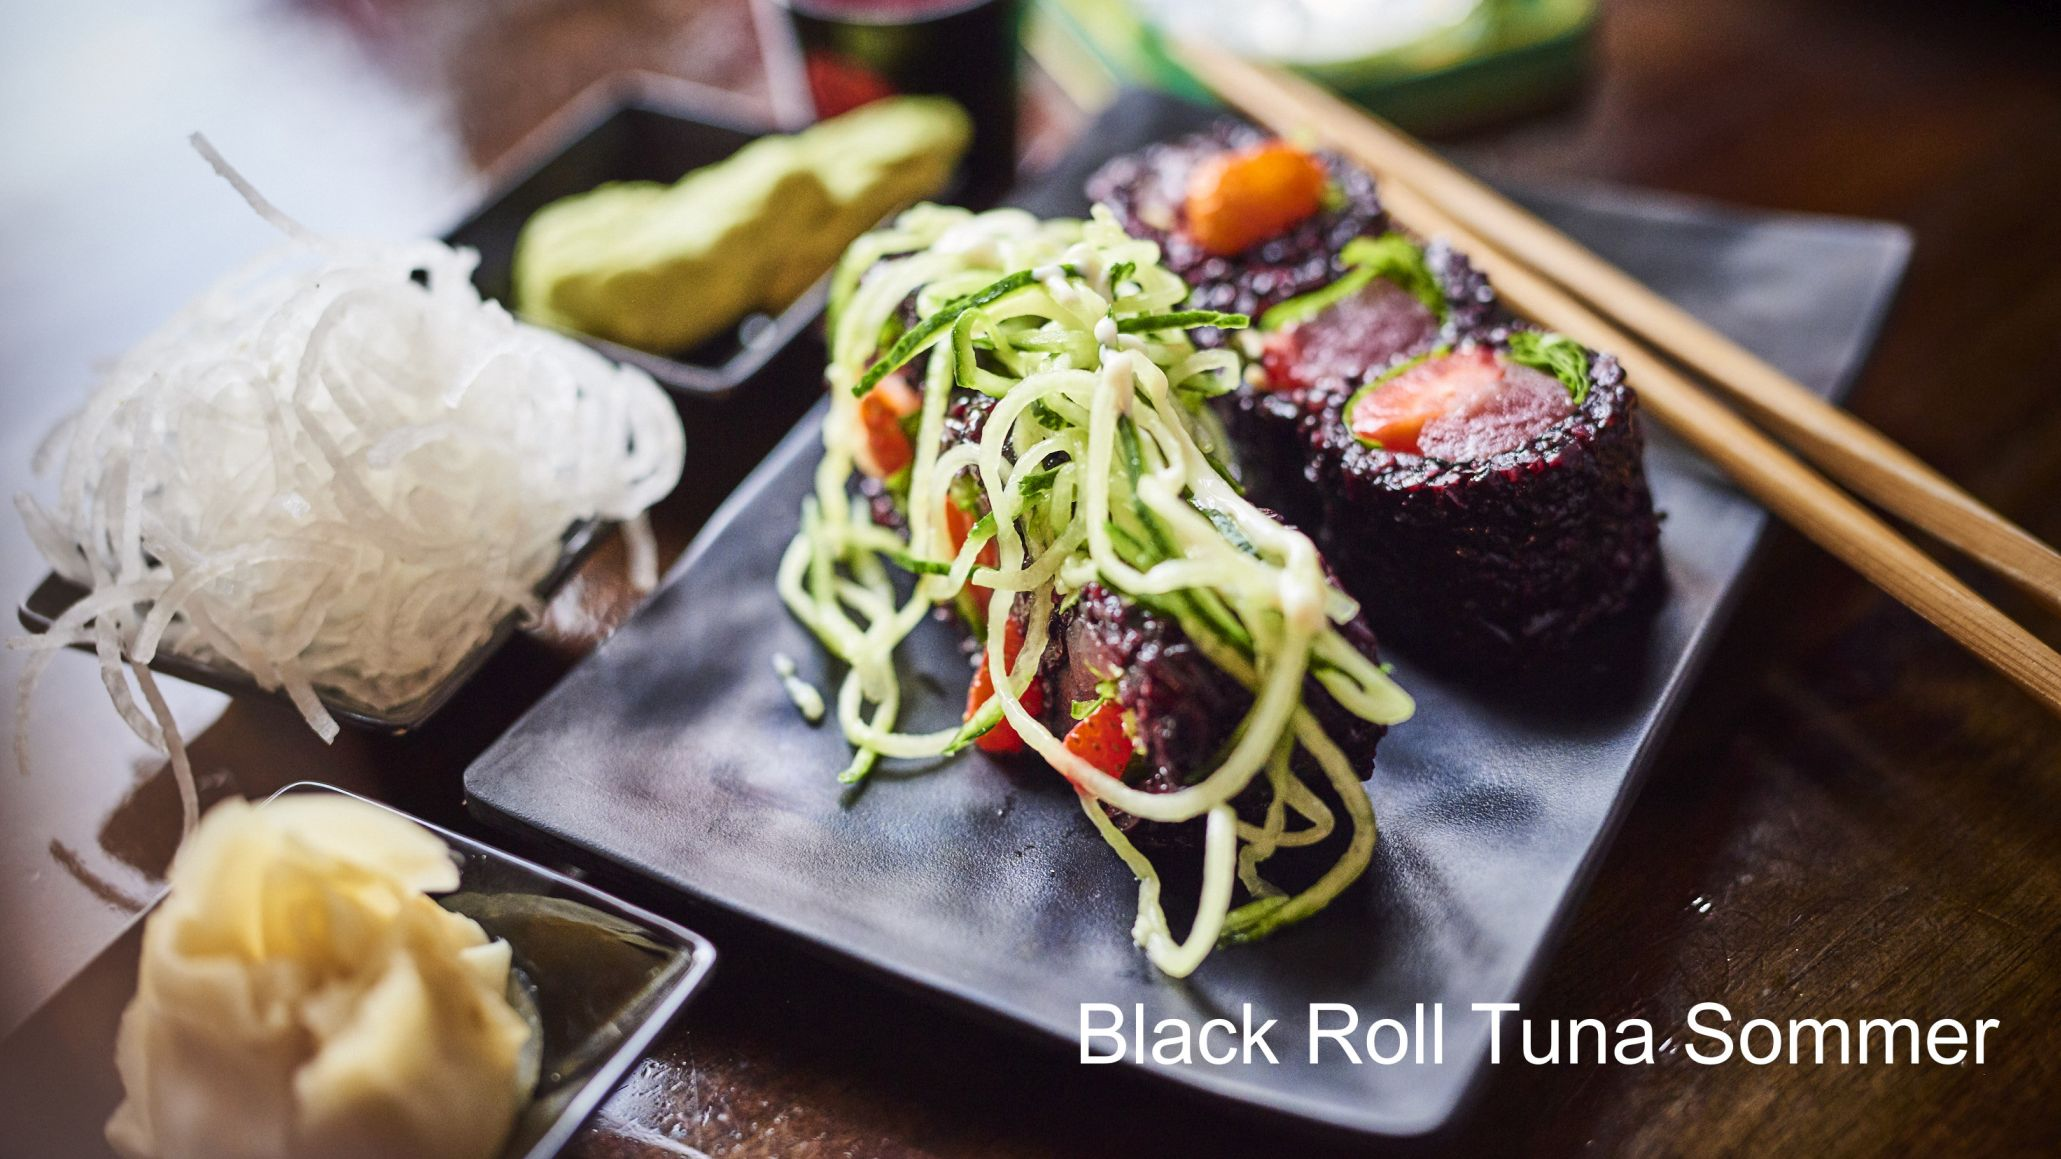 05_Black_Roll_Tuna_Sommer.jpg